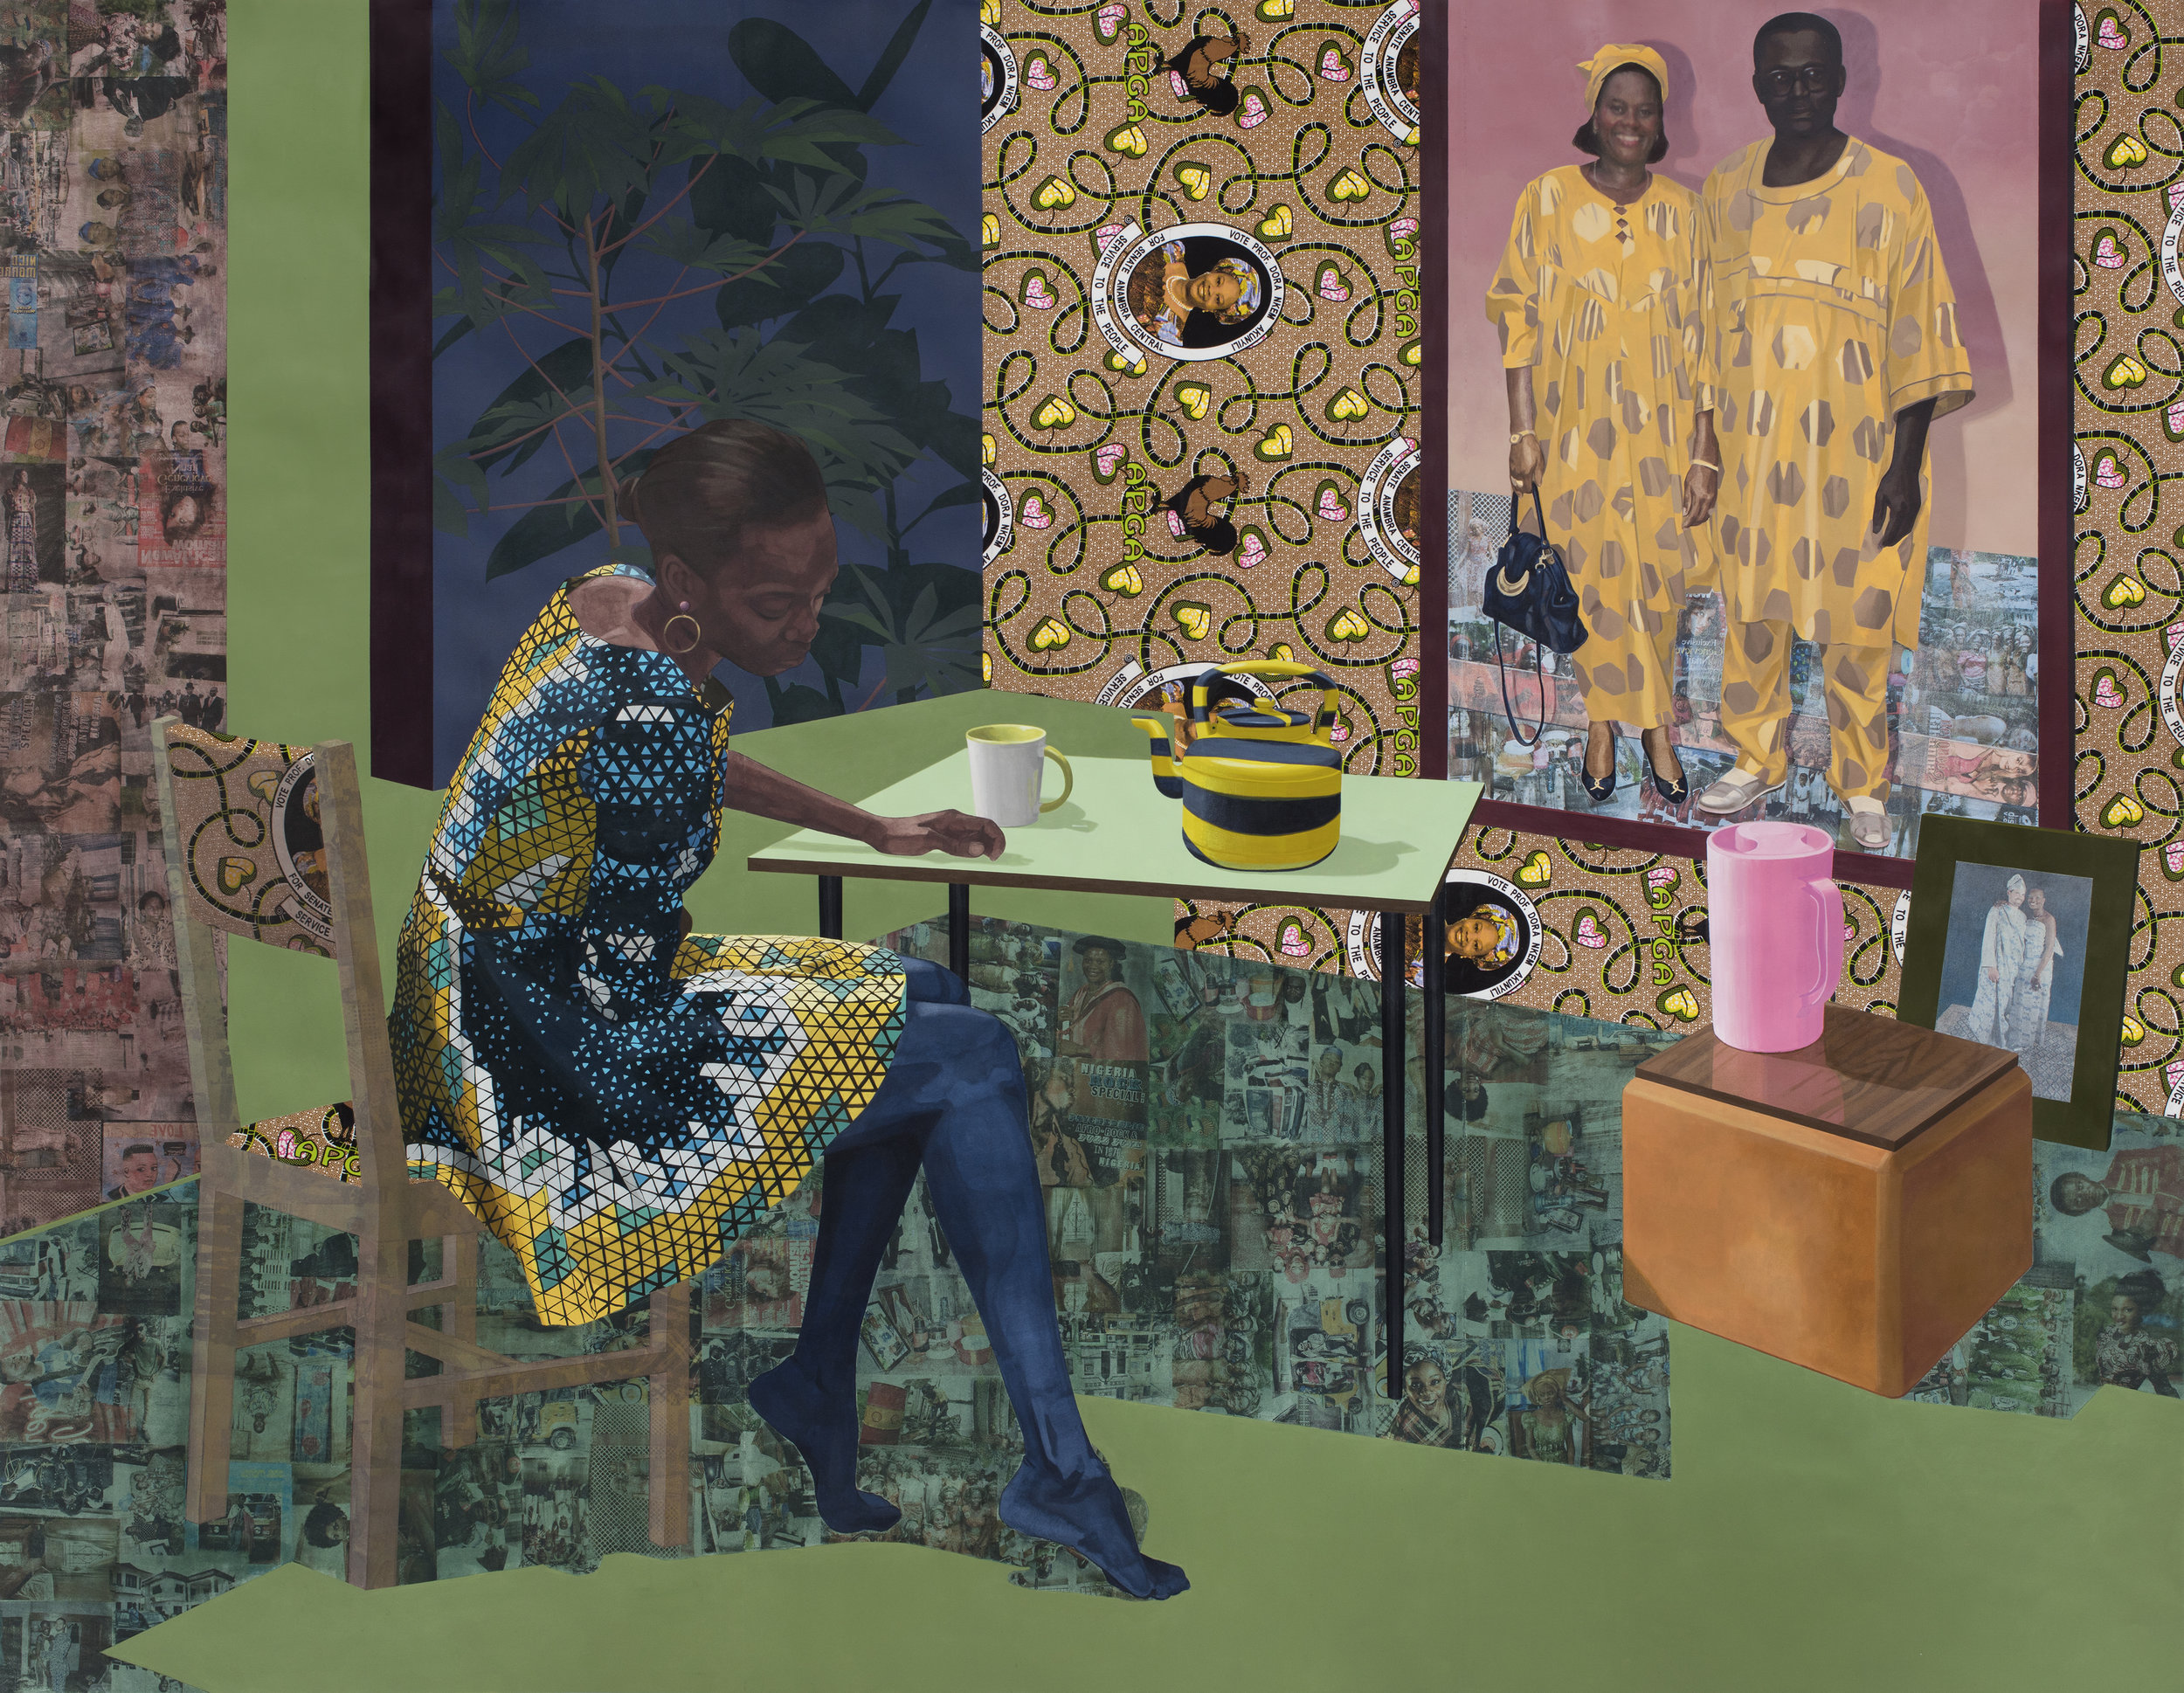 Njideka Akunyili Crosby. Dwell: Aso Ebi. 2017. © Njideka Akunyili Crosby. Courtesy the artist and Victoria Miro, London. Photography Brian Forrest.